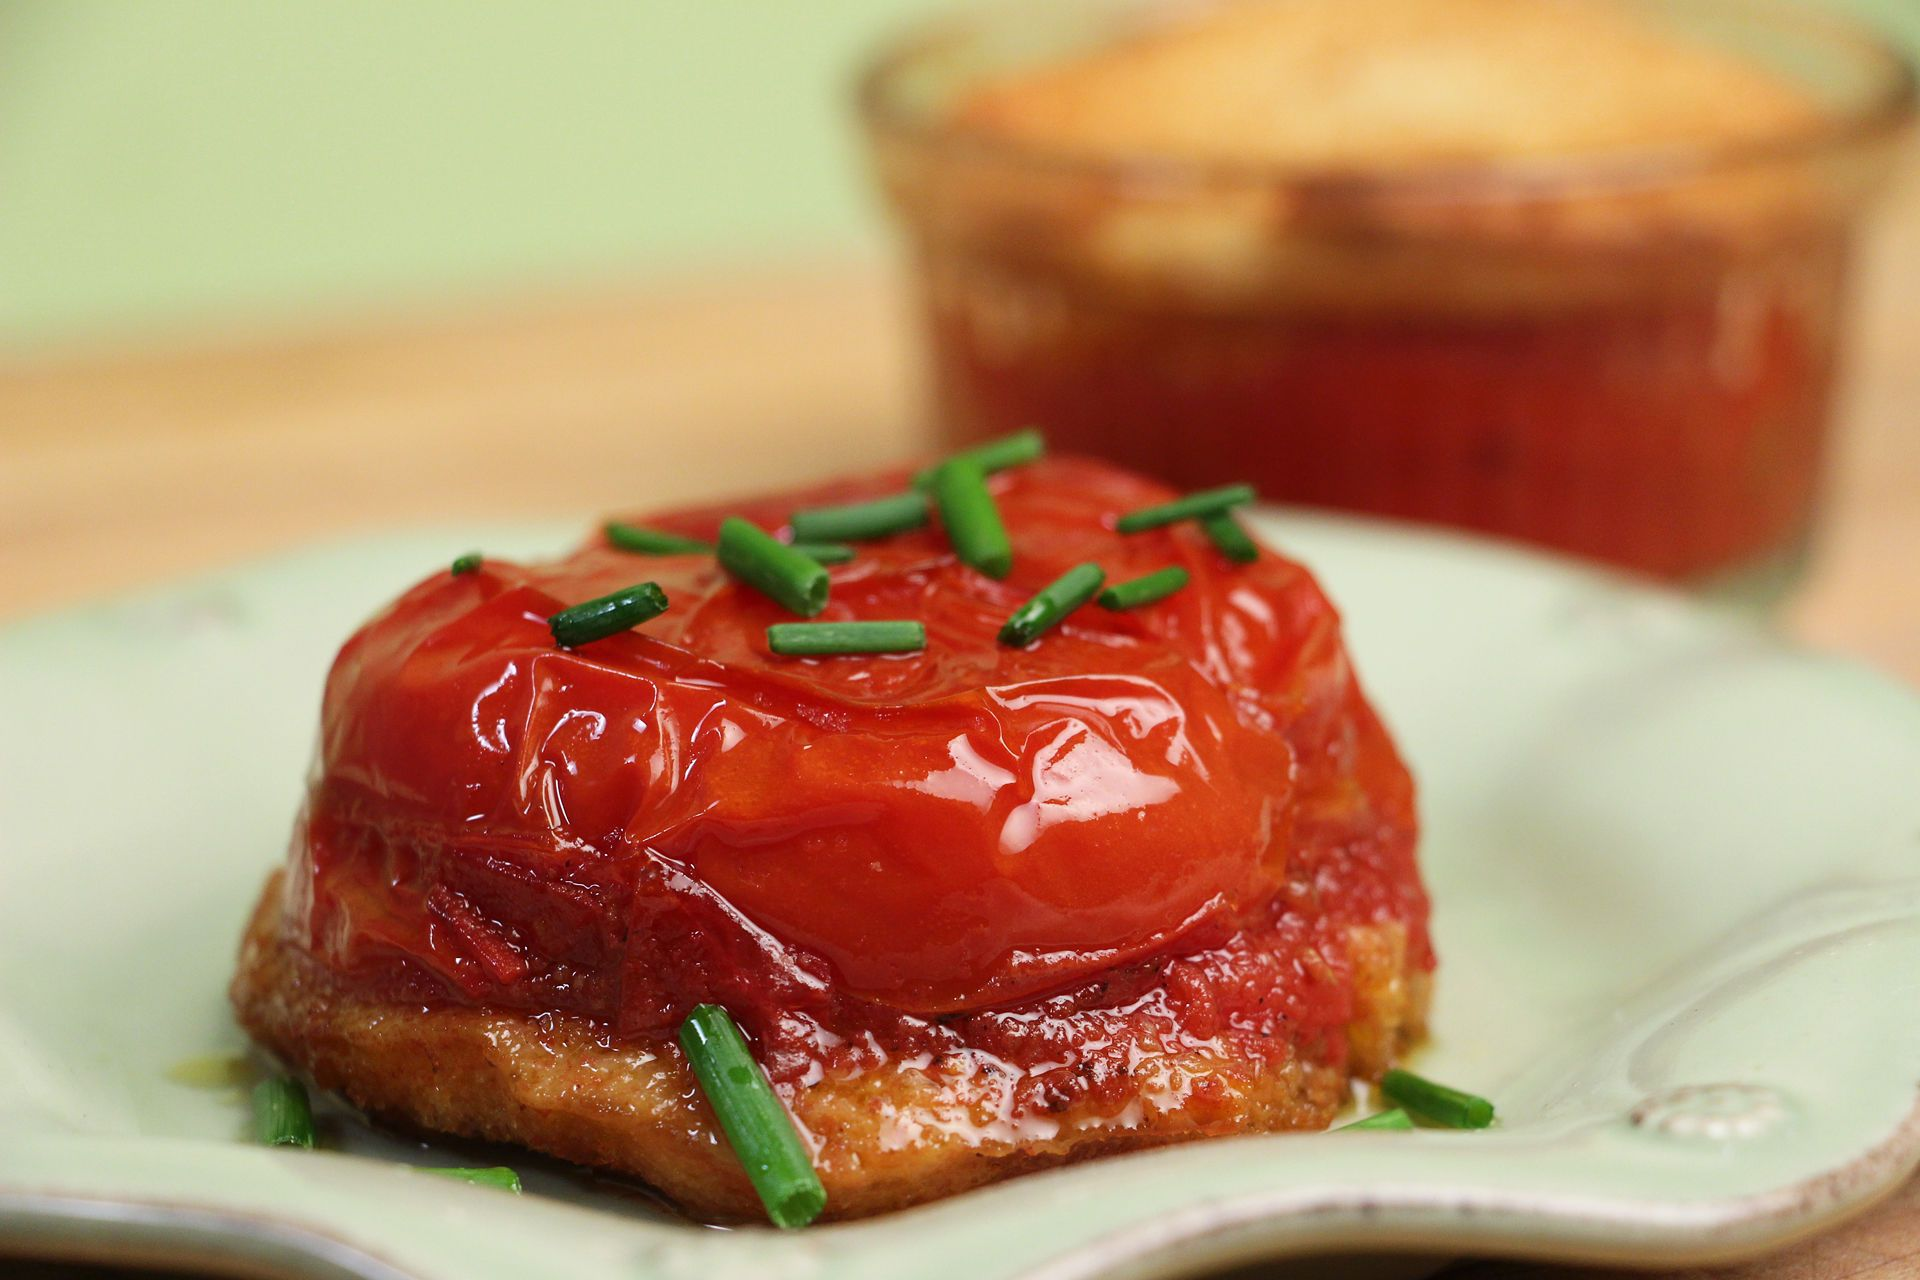 Tomato Tatin Jacques Pepin Heart And Soul Kqed Food